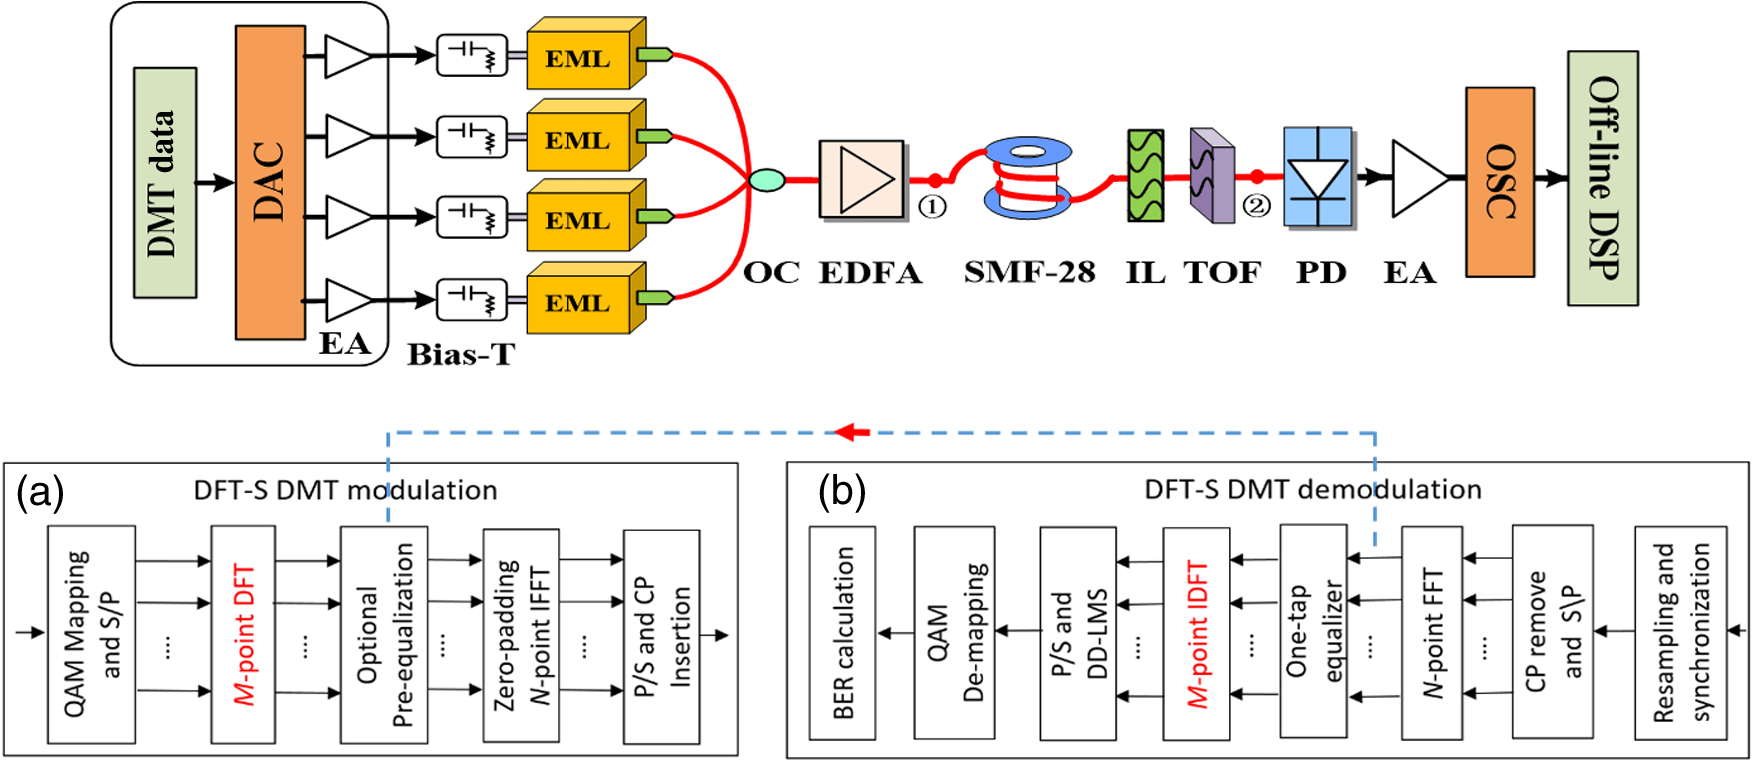 hight resolution of experimental setup of 4 lanes dmt transmission using eml dsp process a block diagram of the dft s dmt modulation and b dft s dmt demodulation